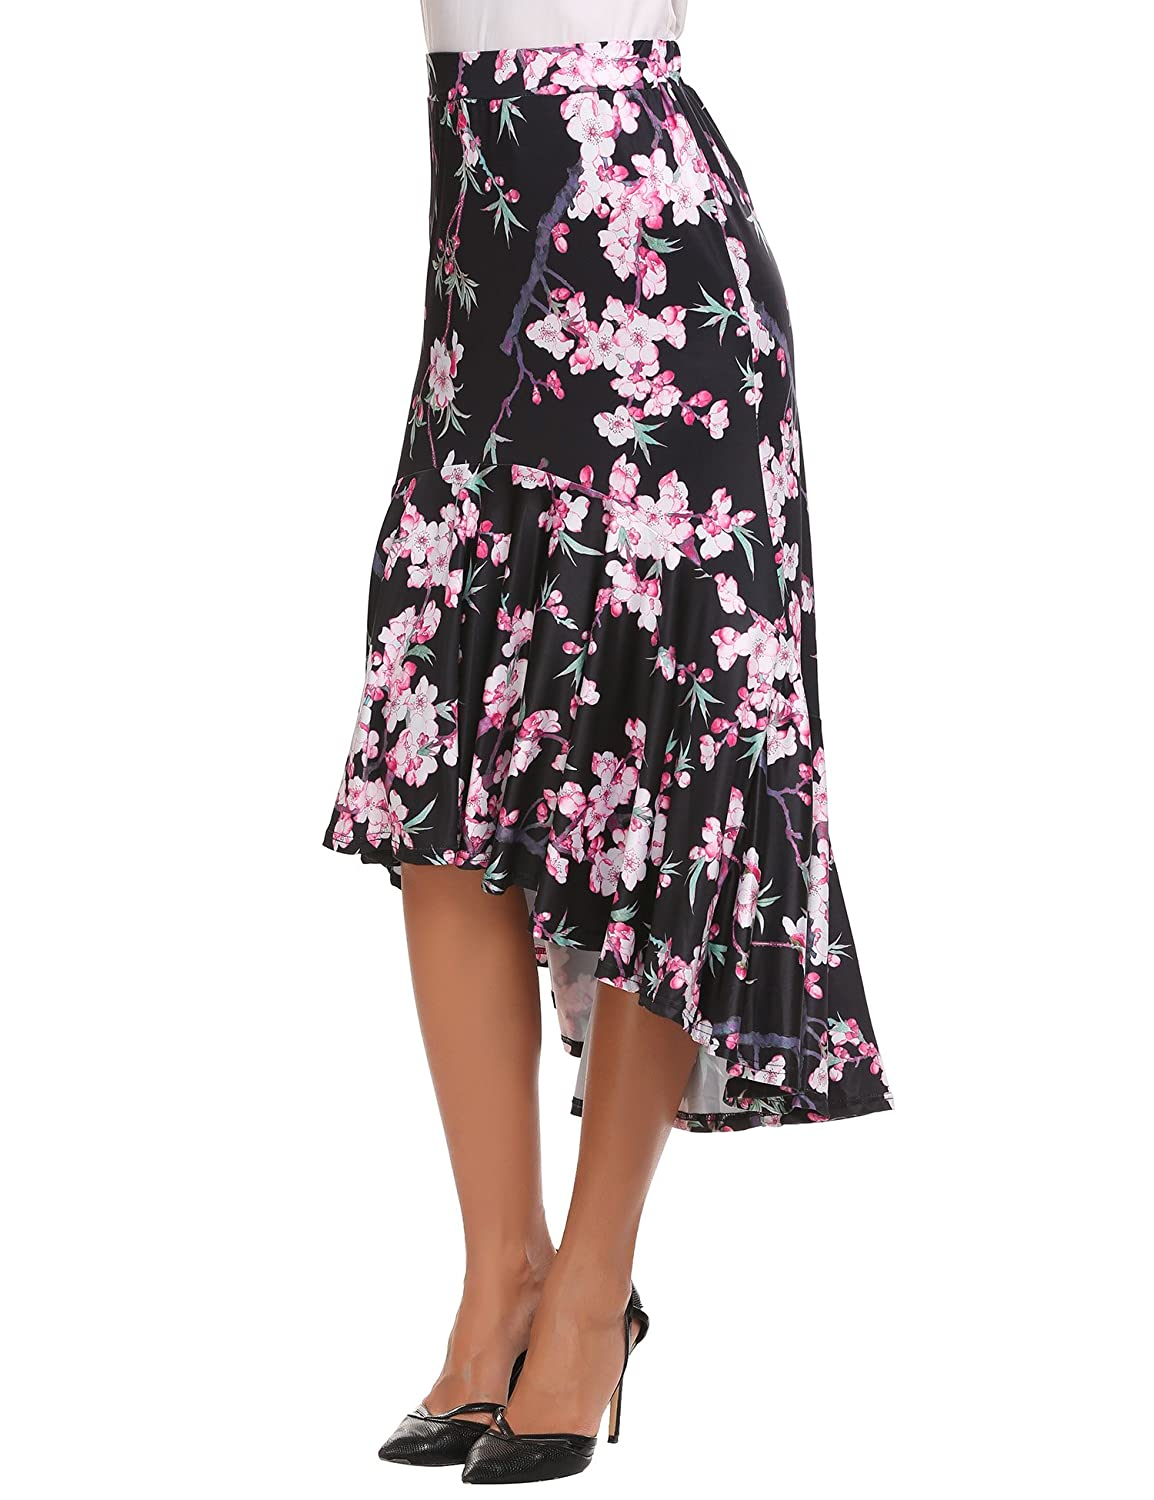 be9215bc0a Zeagoo Floral High Low Skirts Elestic High Waist Flowy Women Skirt Blow  Knee at Amazon Women's Clothing store: